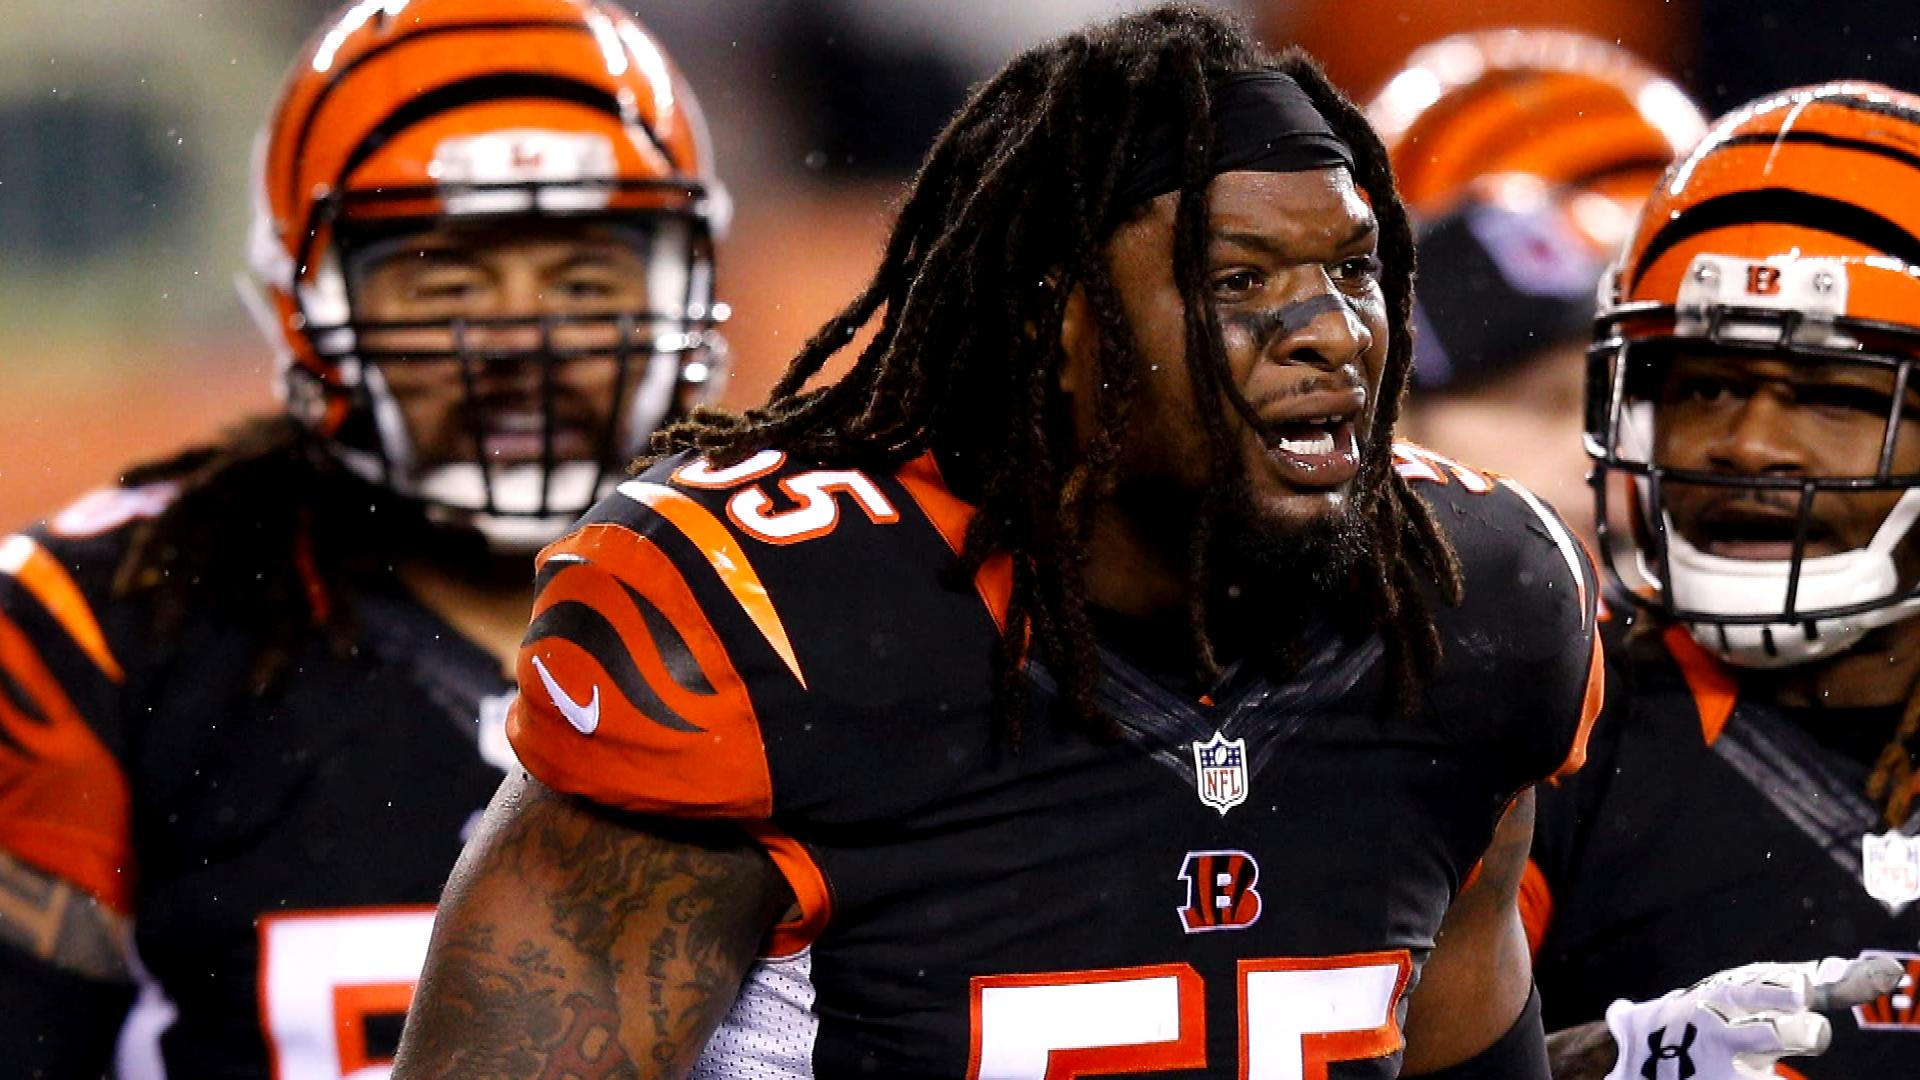 Vontaze Burfict S History Should Have Led To Suspension For